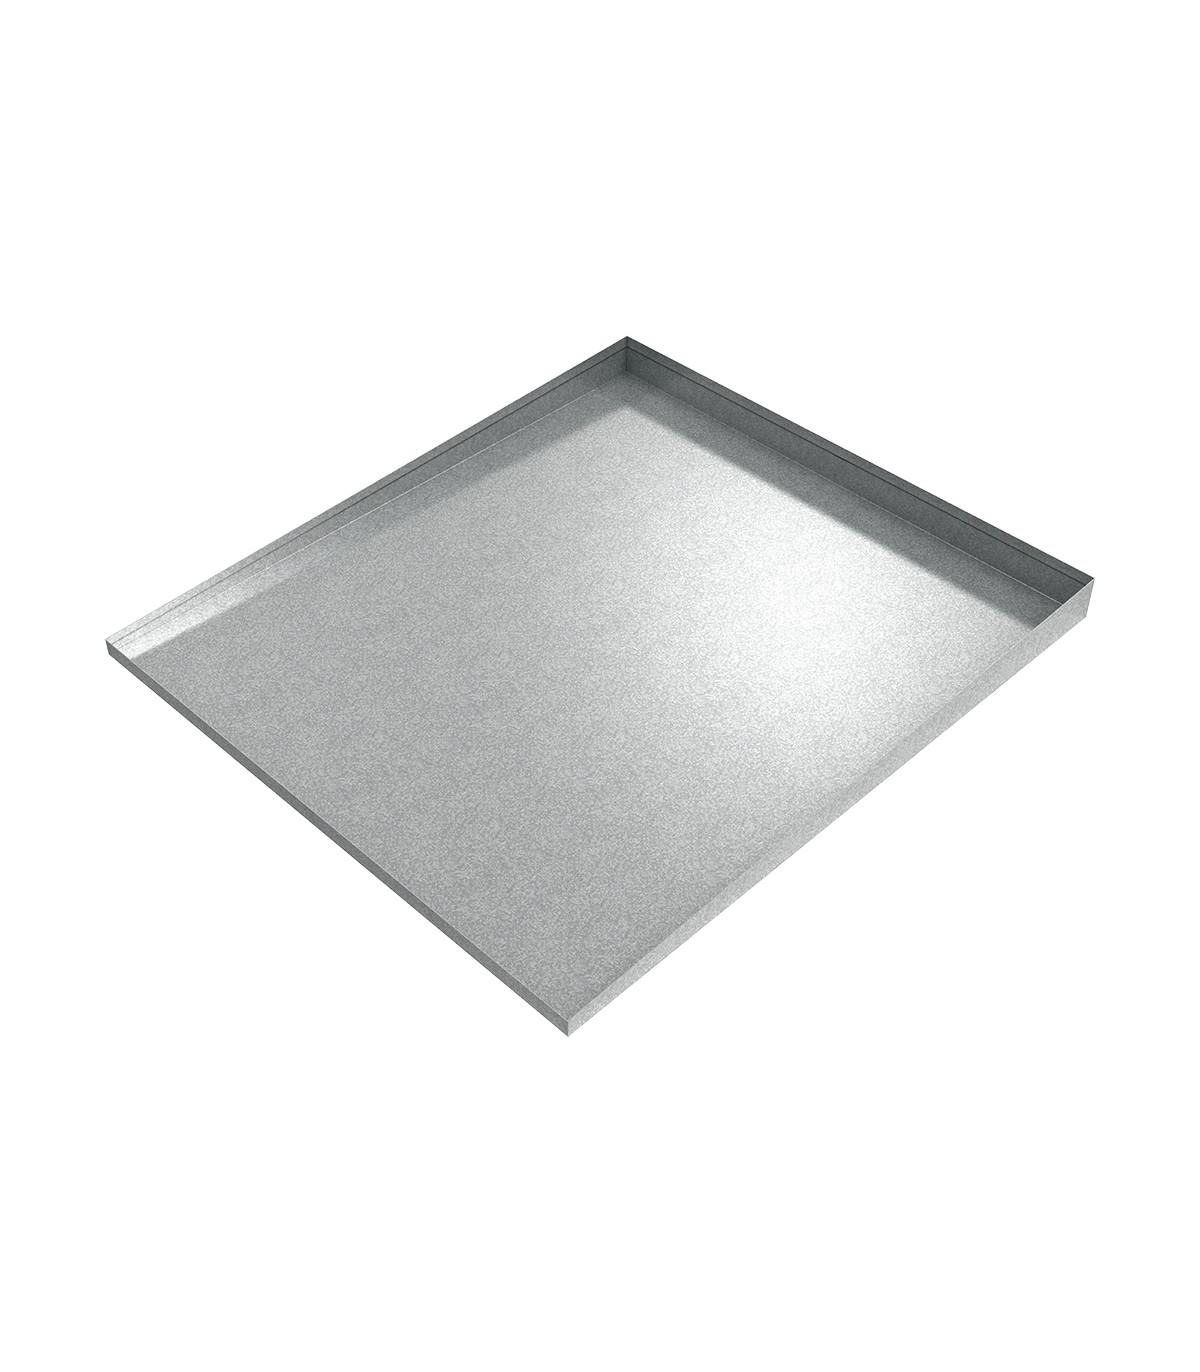 Galvanized Steel Front Load Washer Drip Tray